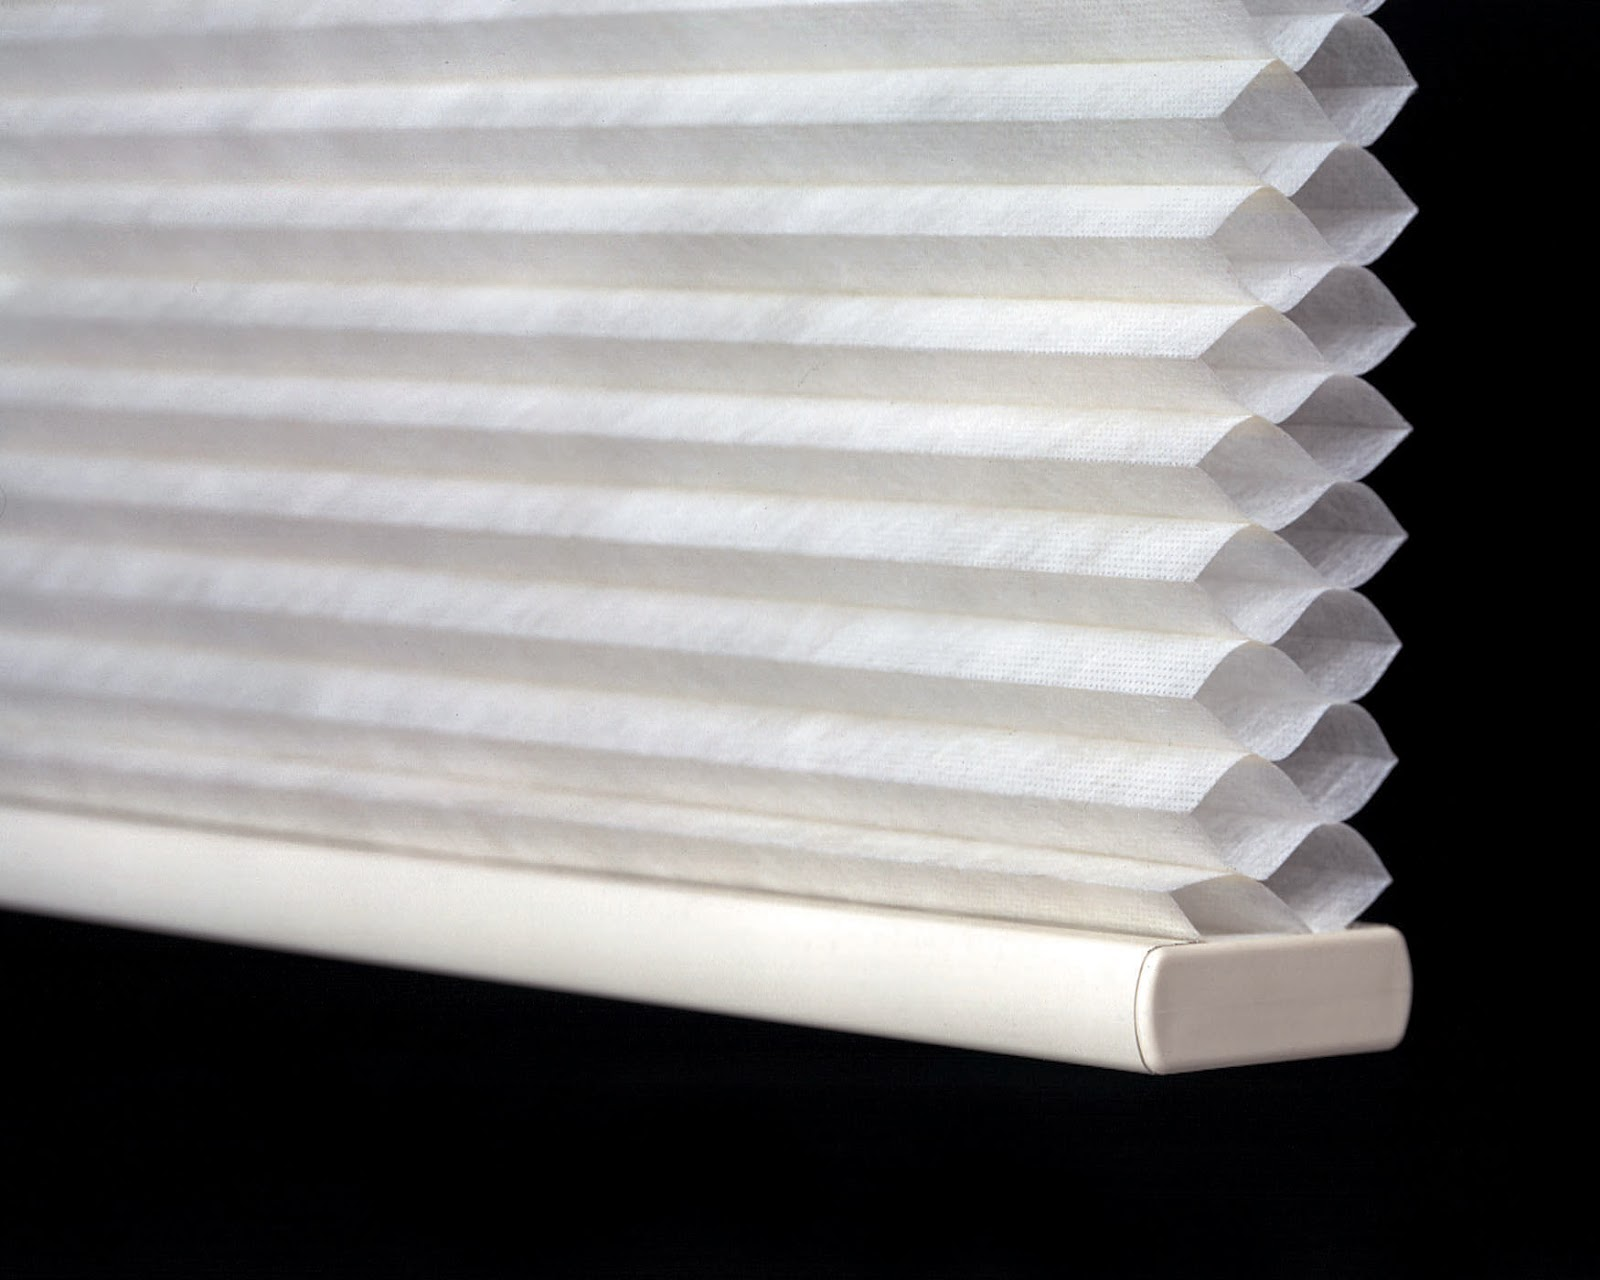 Cellular shades act as an insulating barrier between the window and the room, effectively reducing heat transfer.